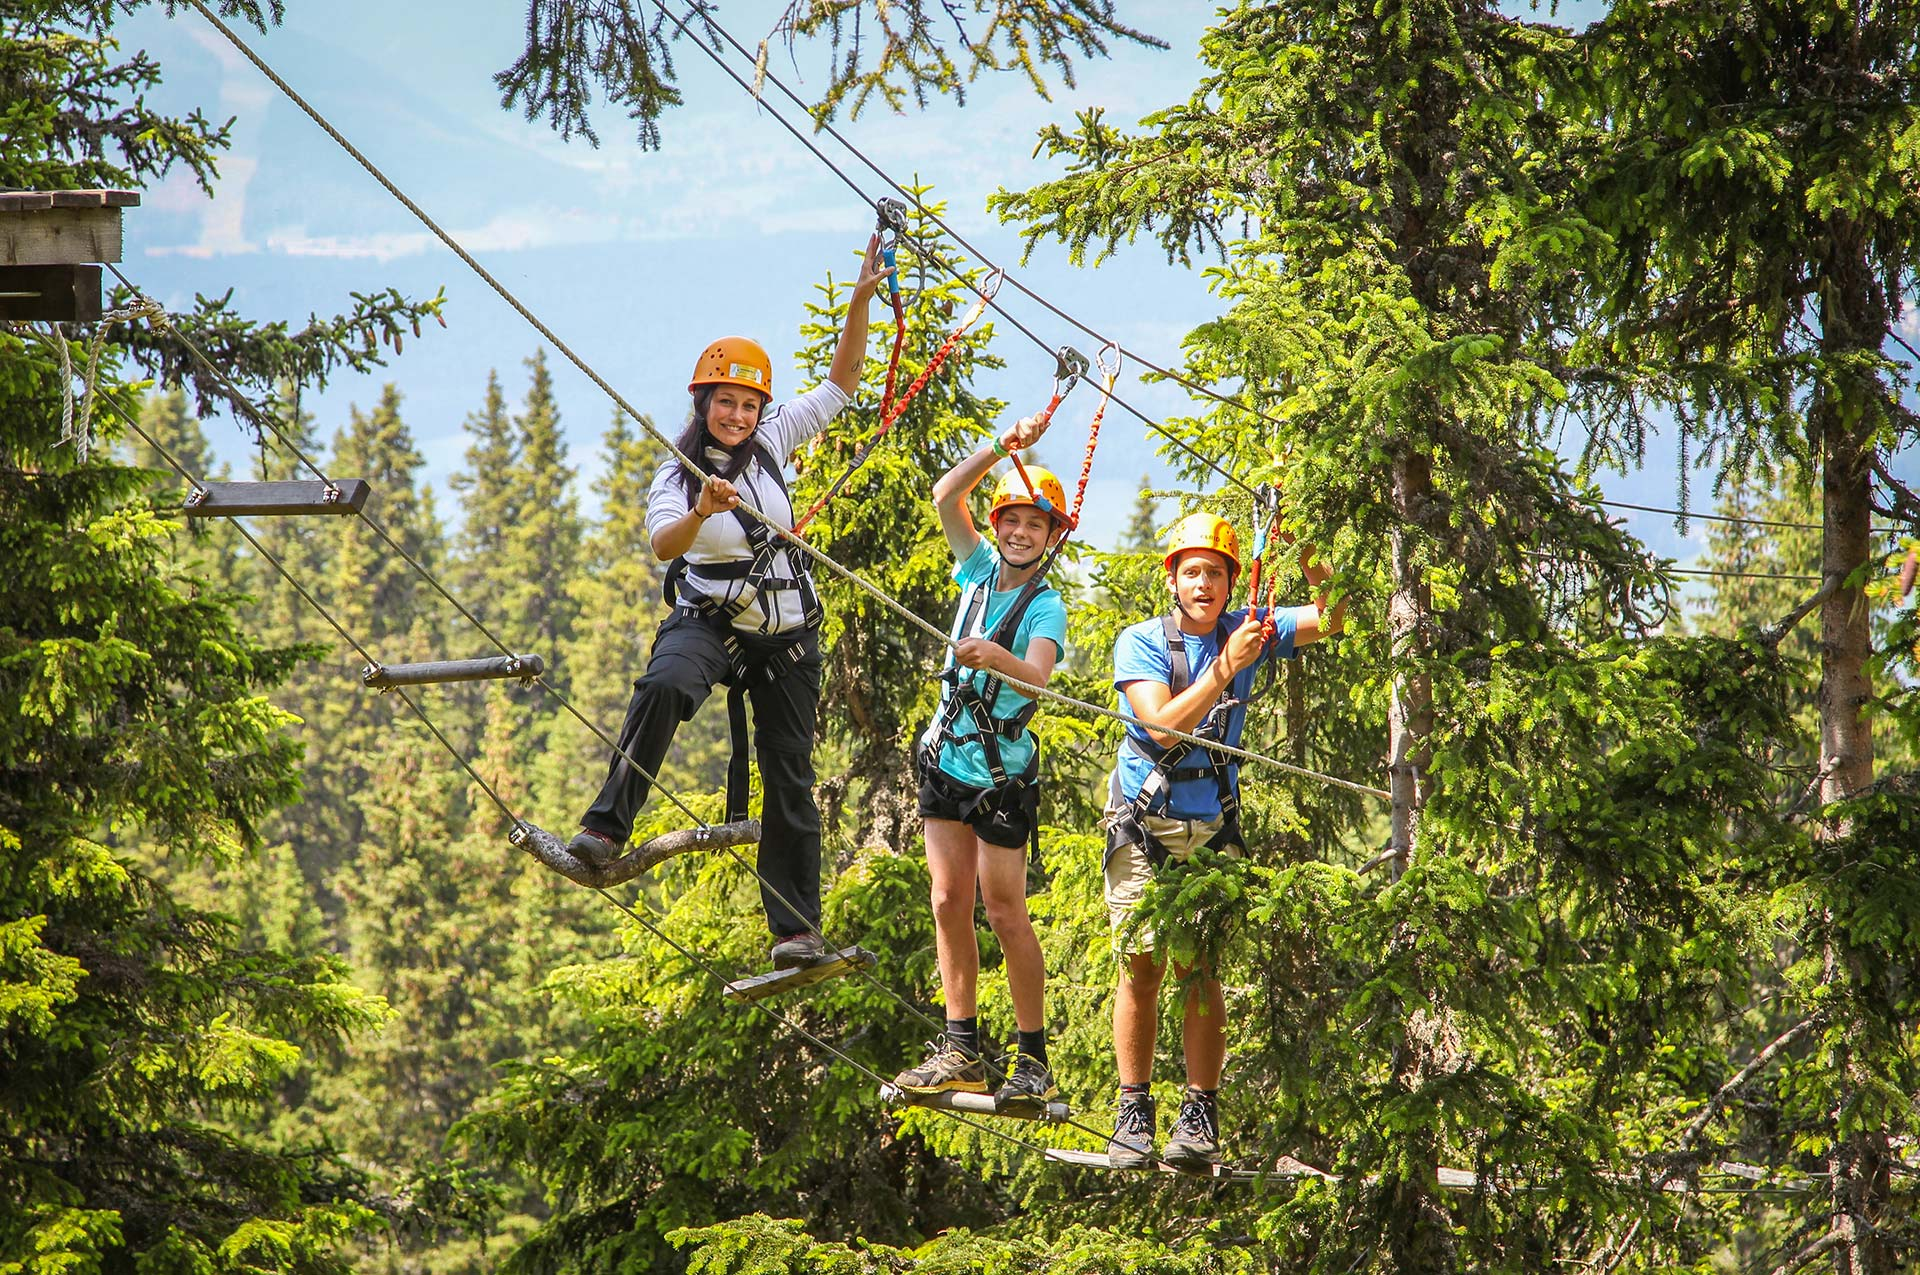 High ropes course, fun for the whole family